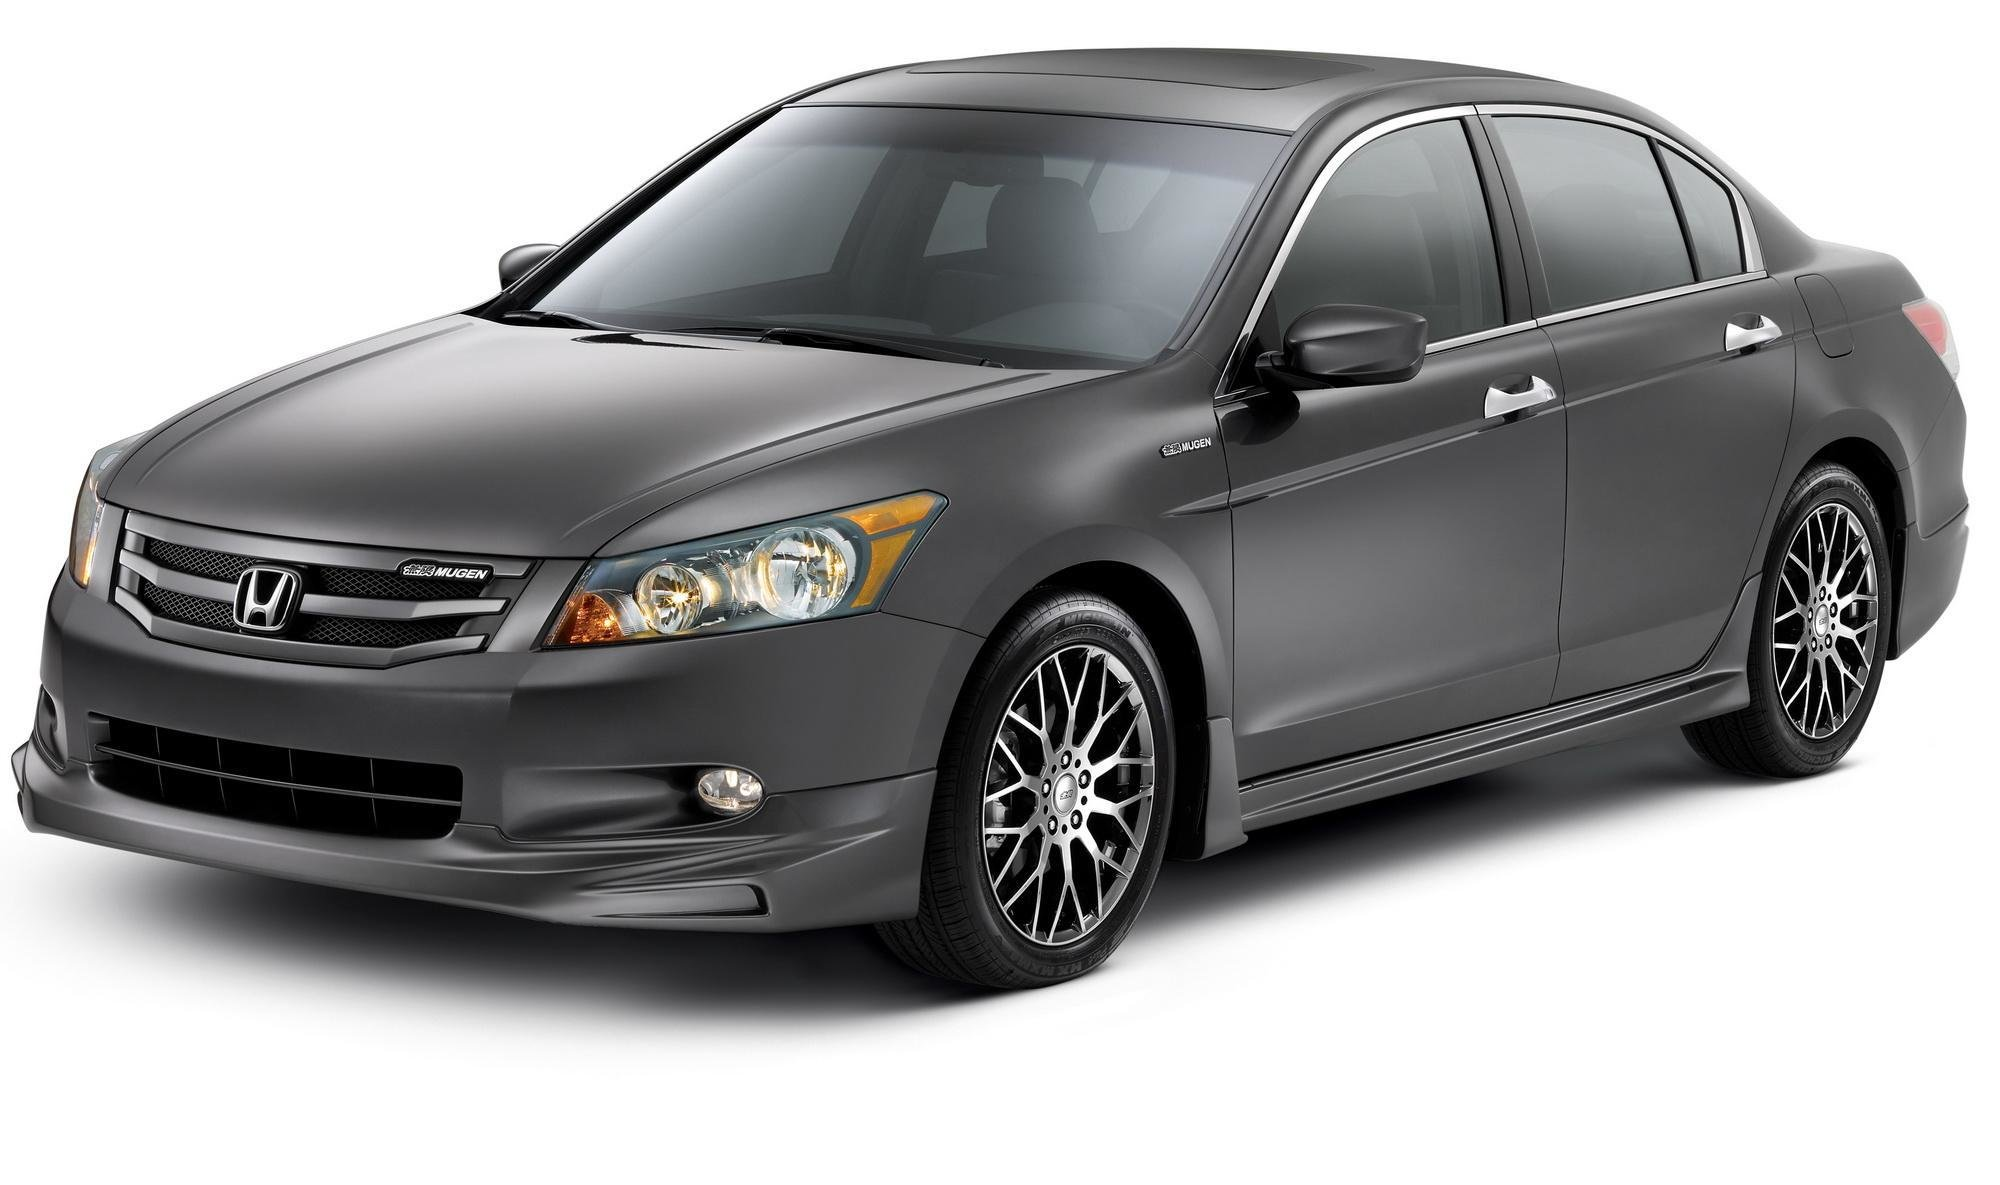 New 2009 Honda Accord Sedan By Mugen Top Speed On This Month